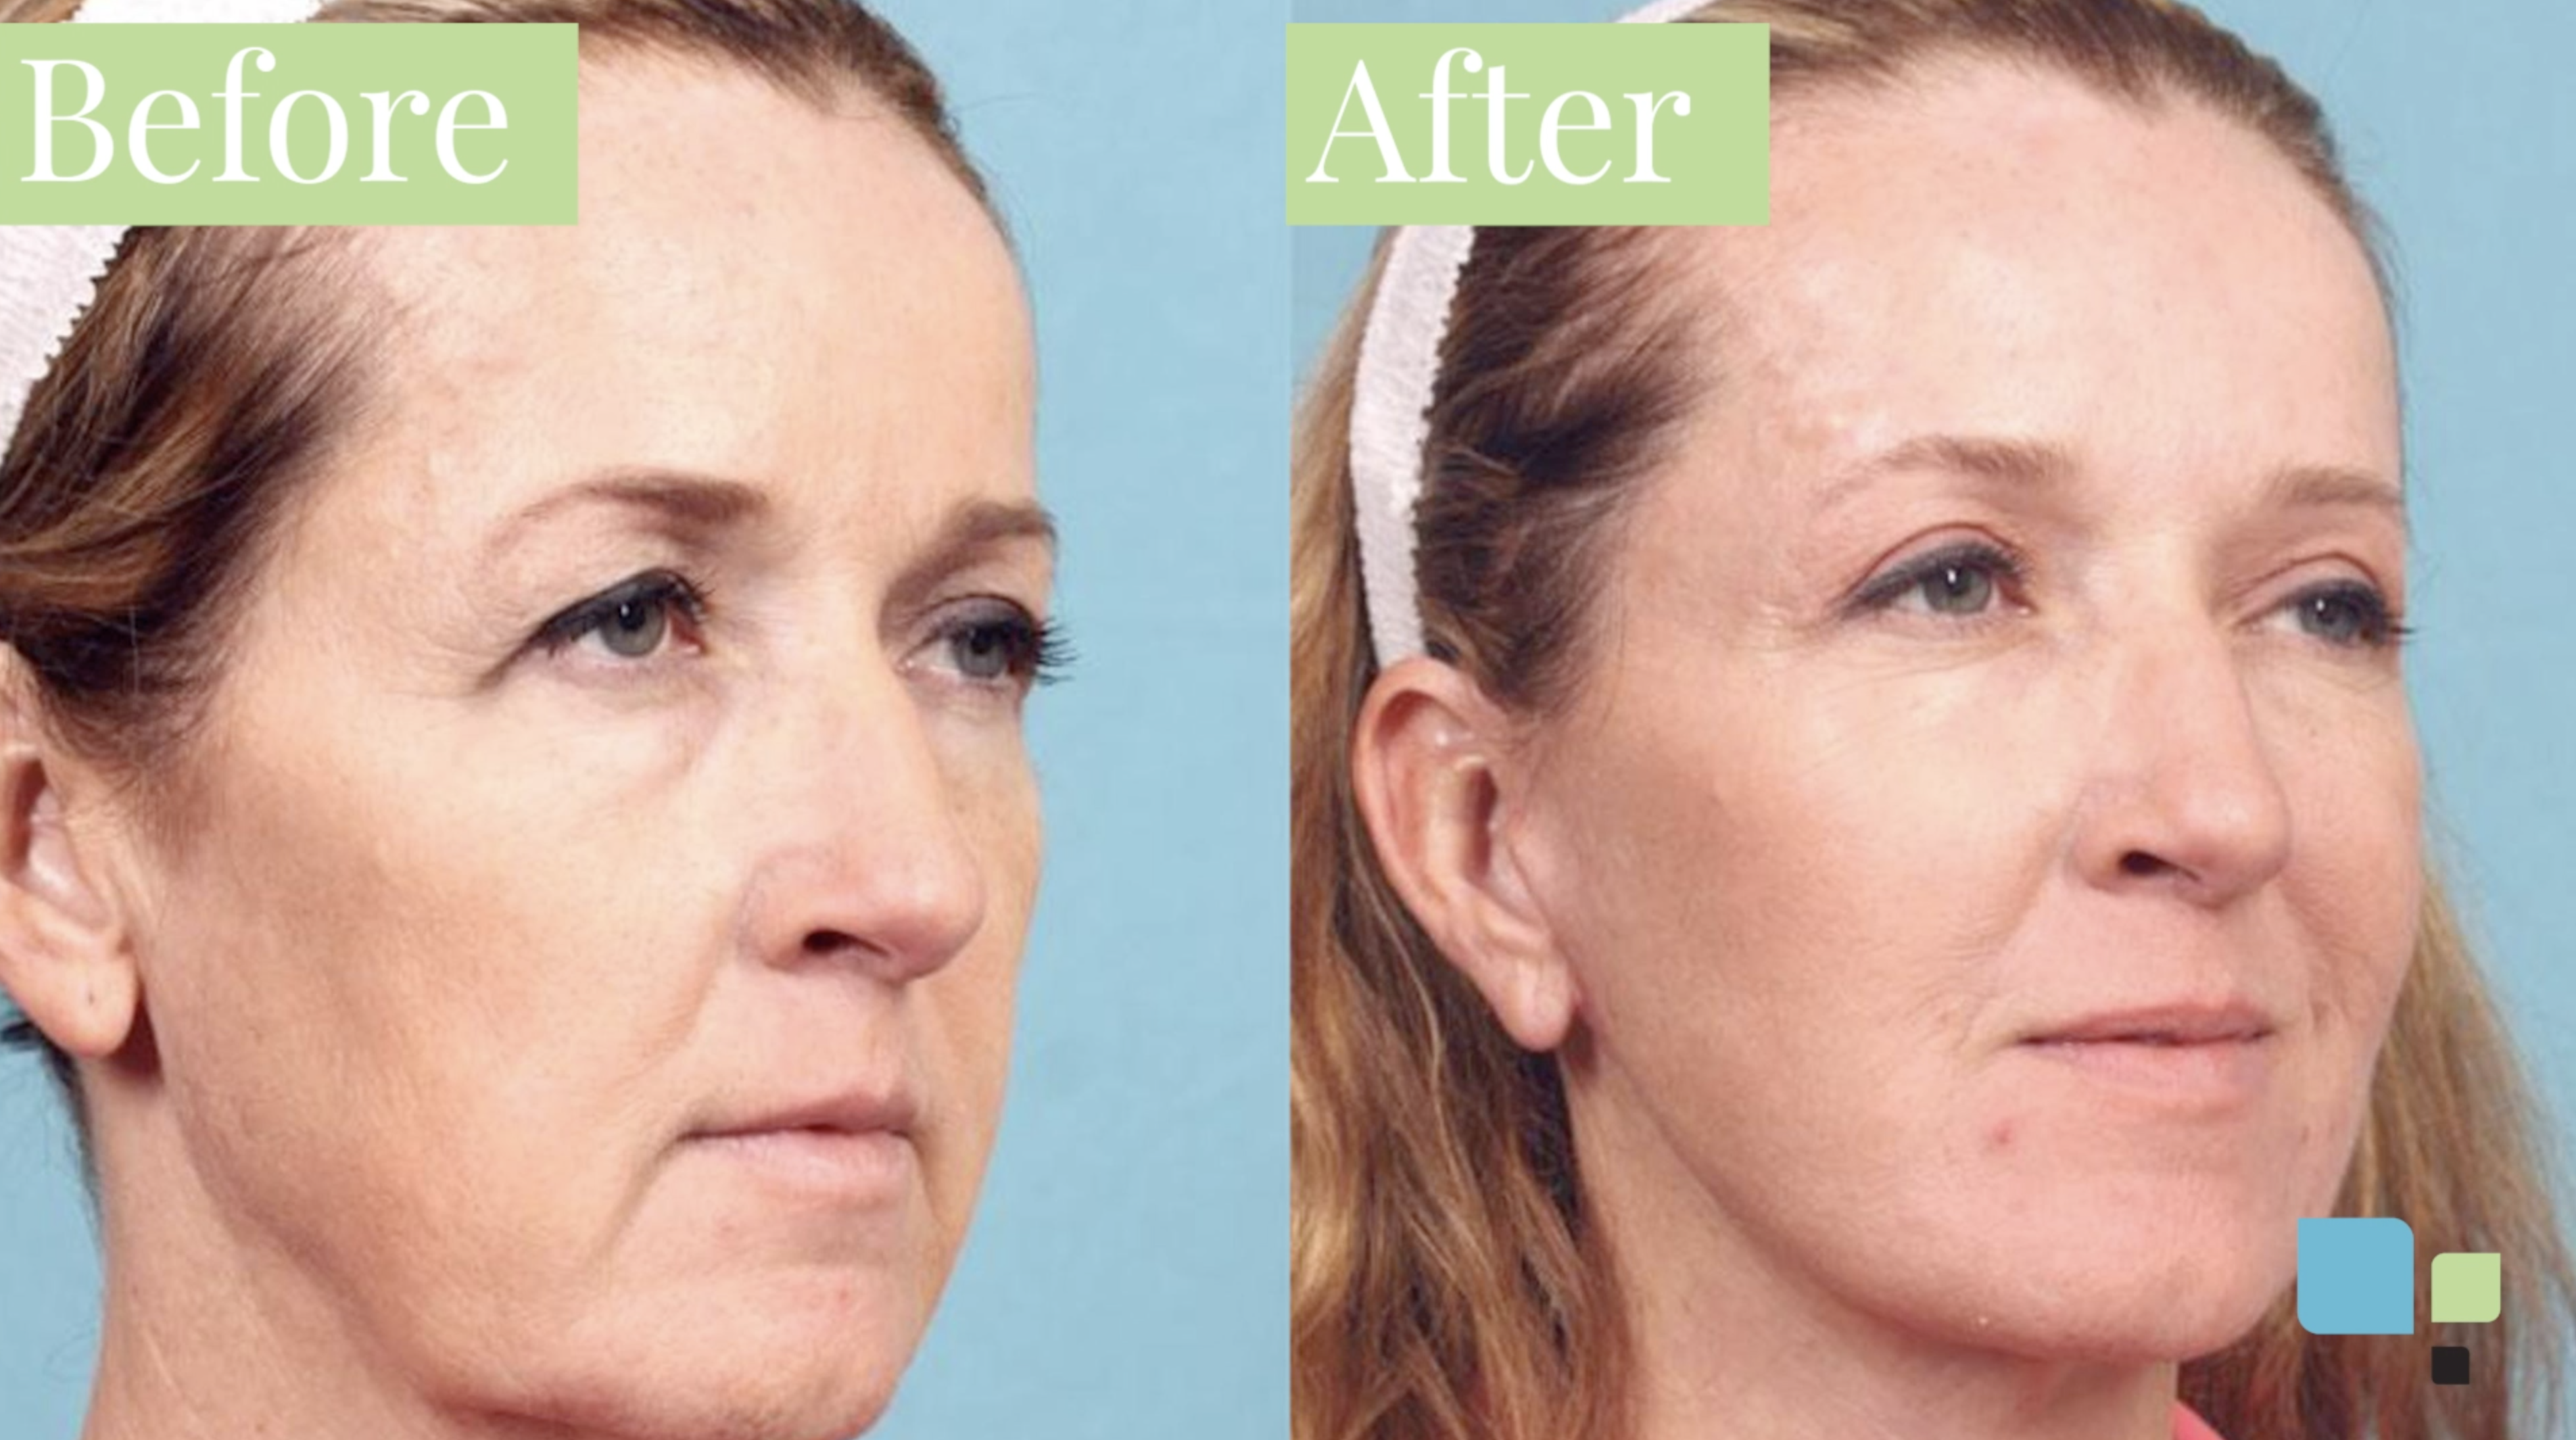 Actual blepharoplasty patient before and after photos